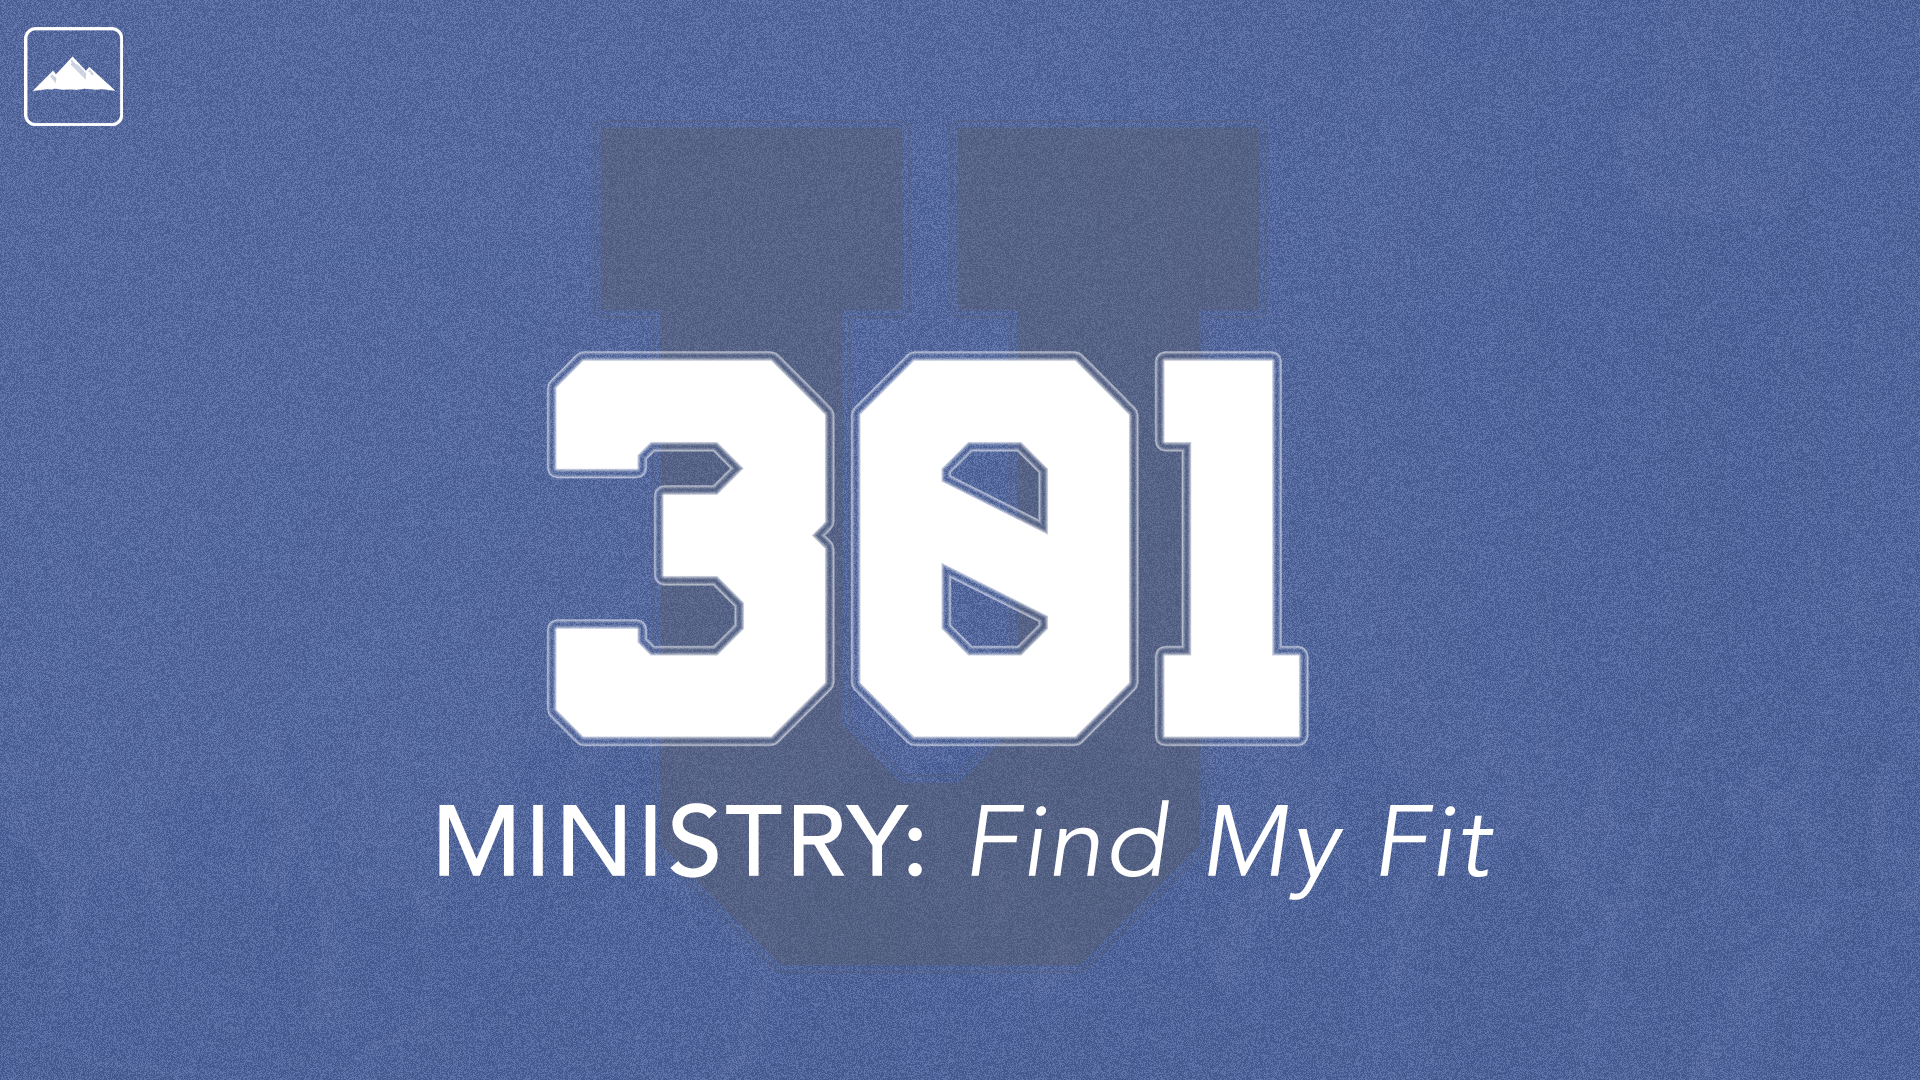 301 - Ministry